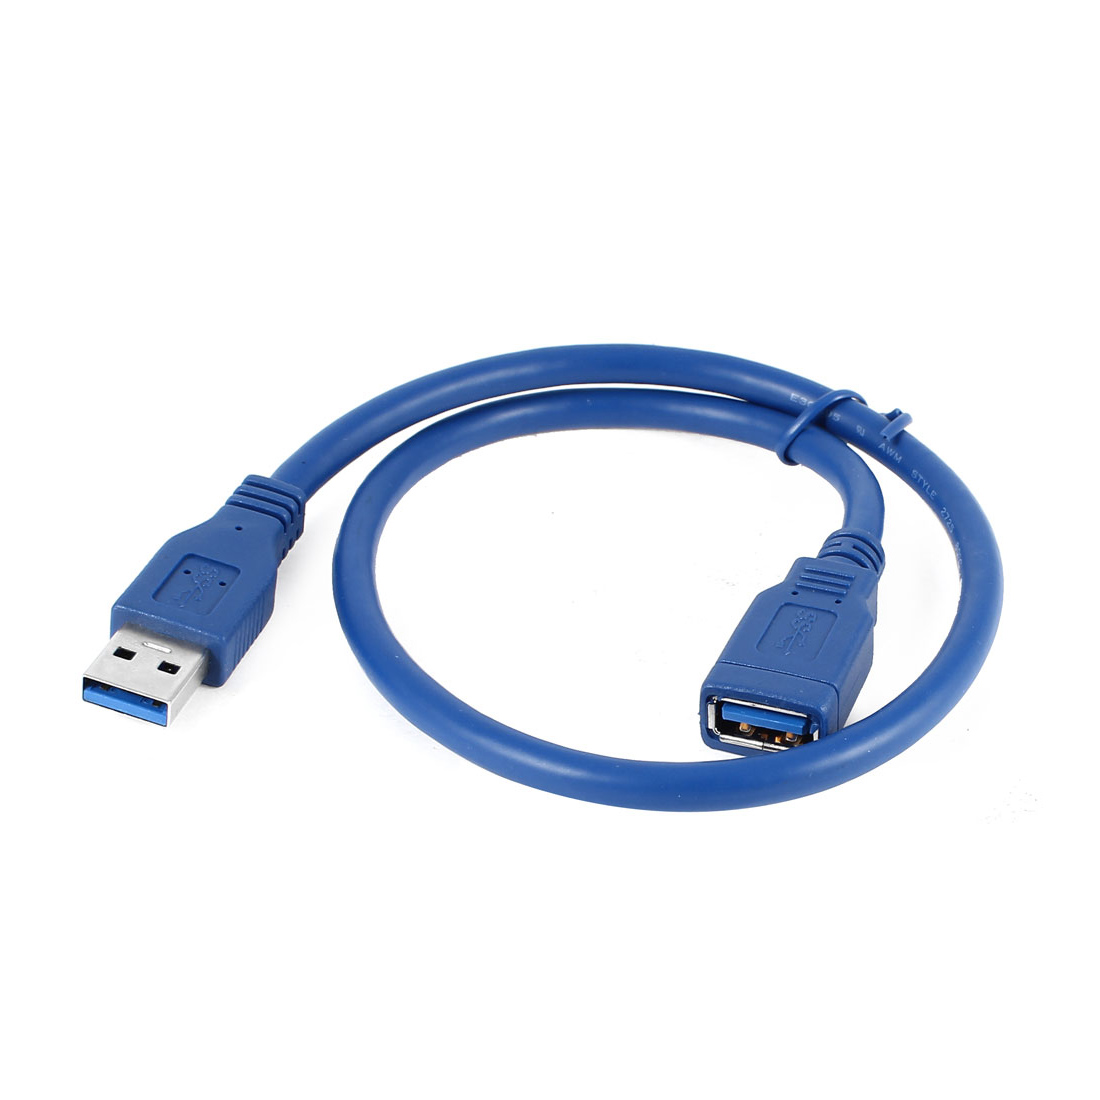 50cm USB 3.0 A Male to Female Extension Data Sync Transfer Cord Cable Lead Blue